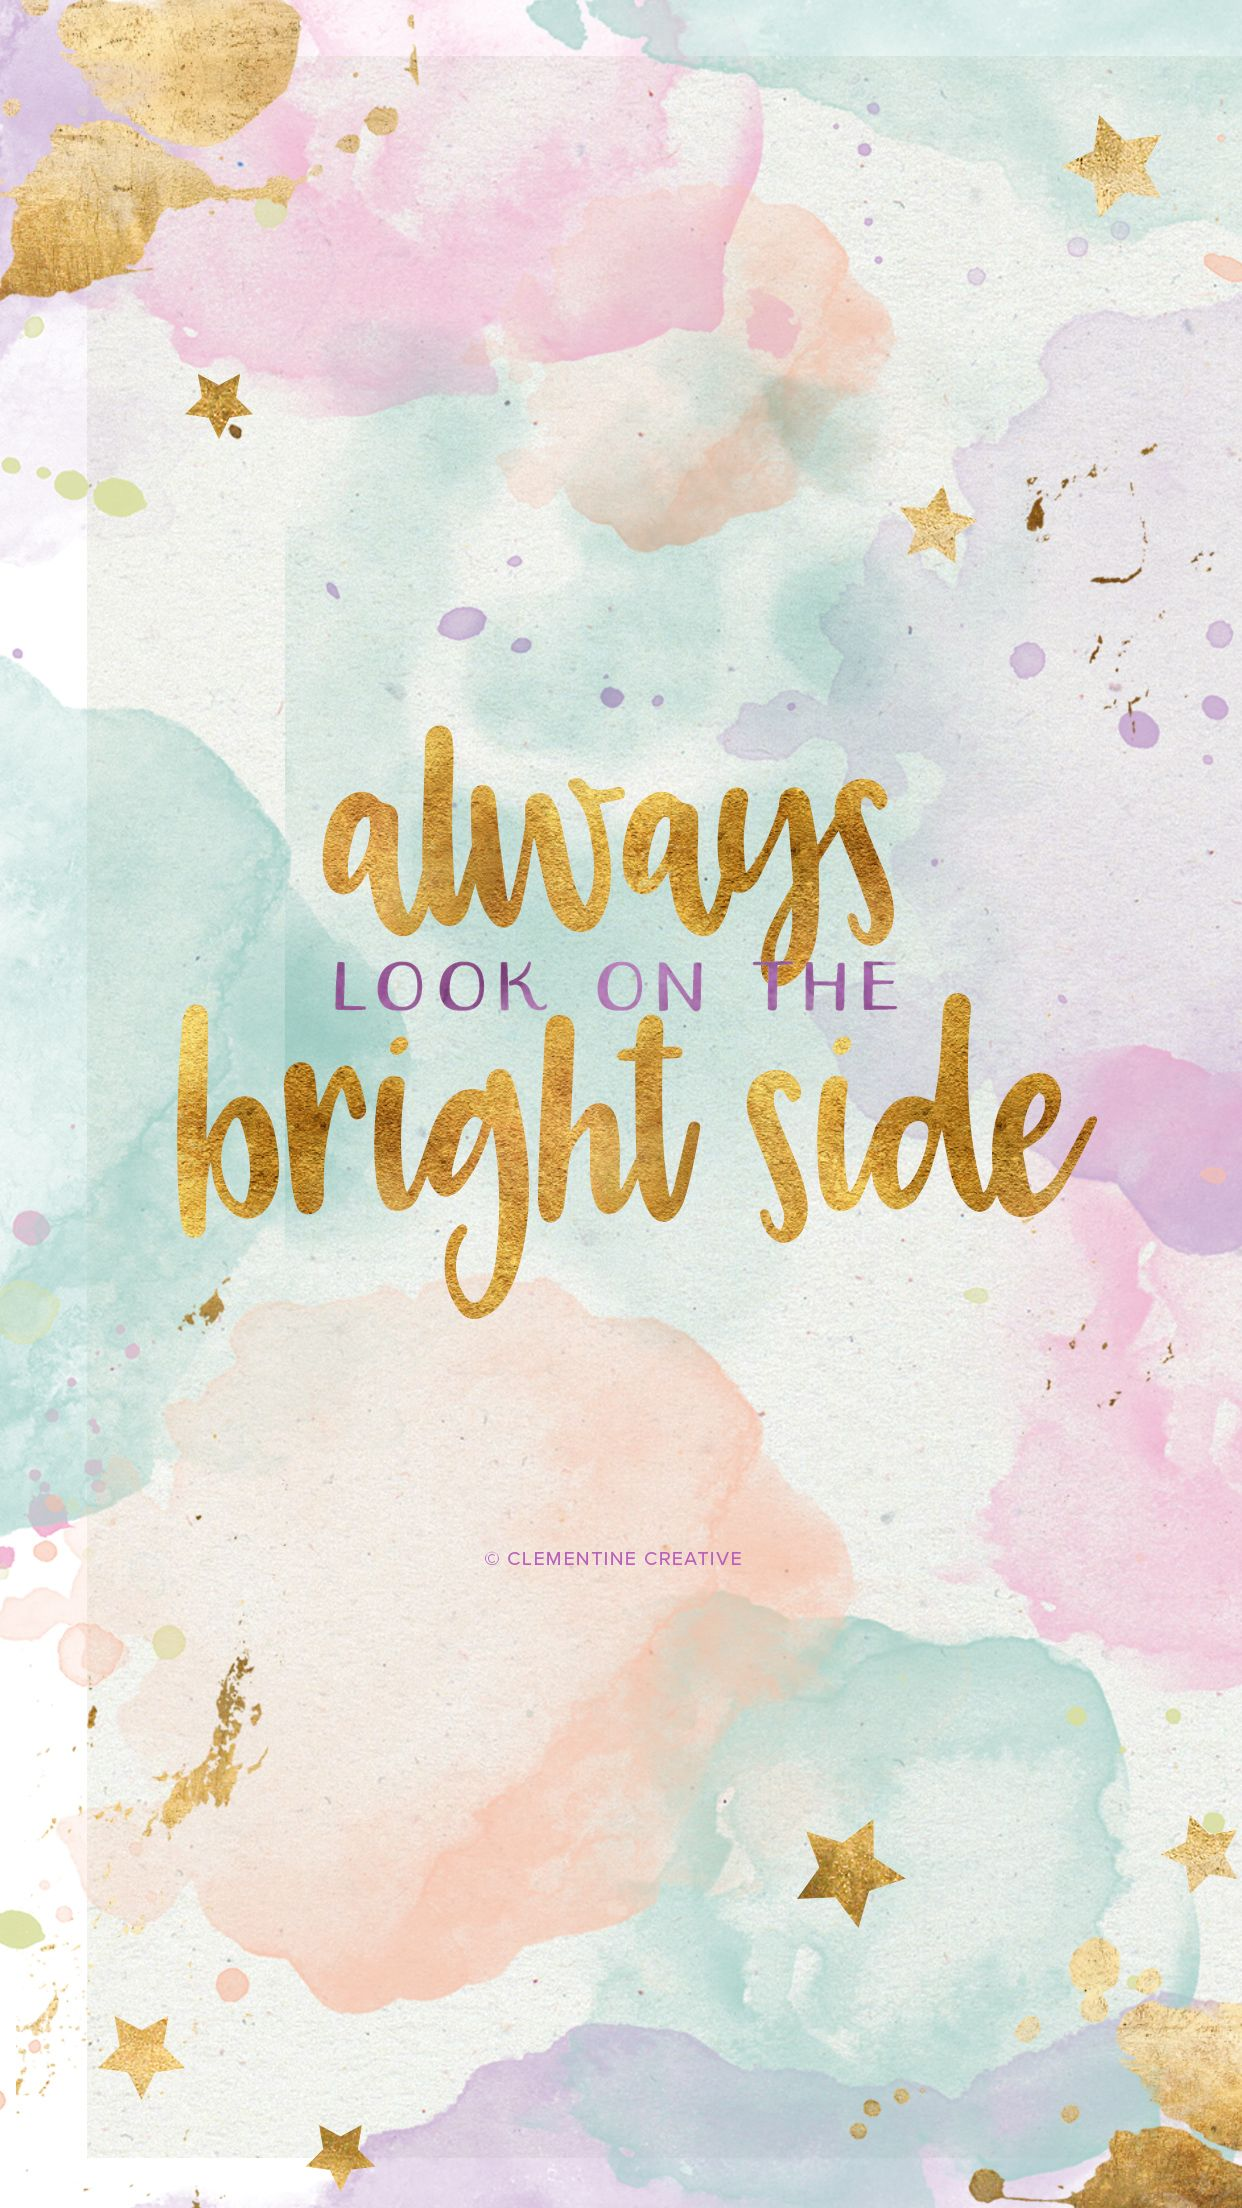 Clementinecreativecoza Wp Content Uploads 2017 02 Always Look On The Bright Side Iphone